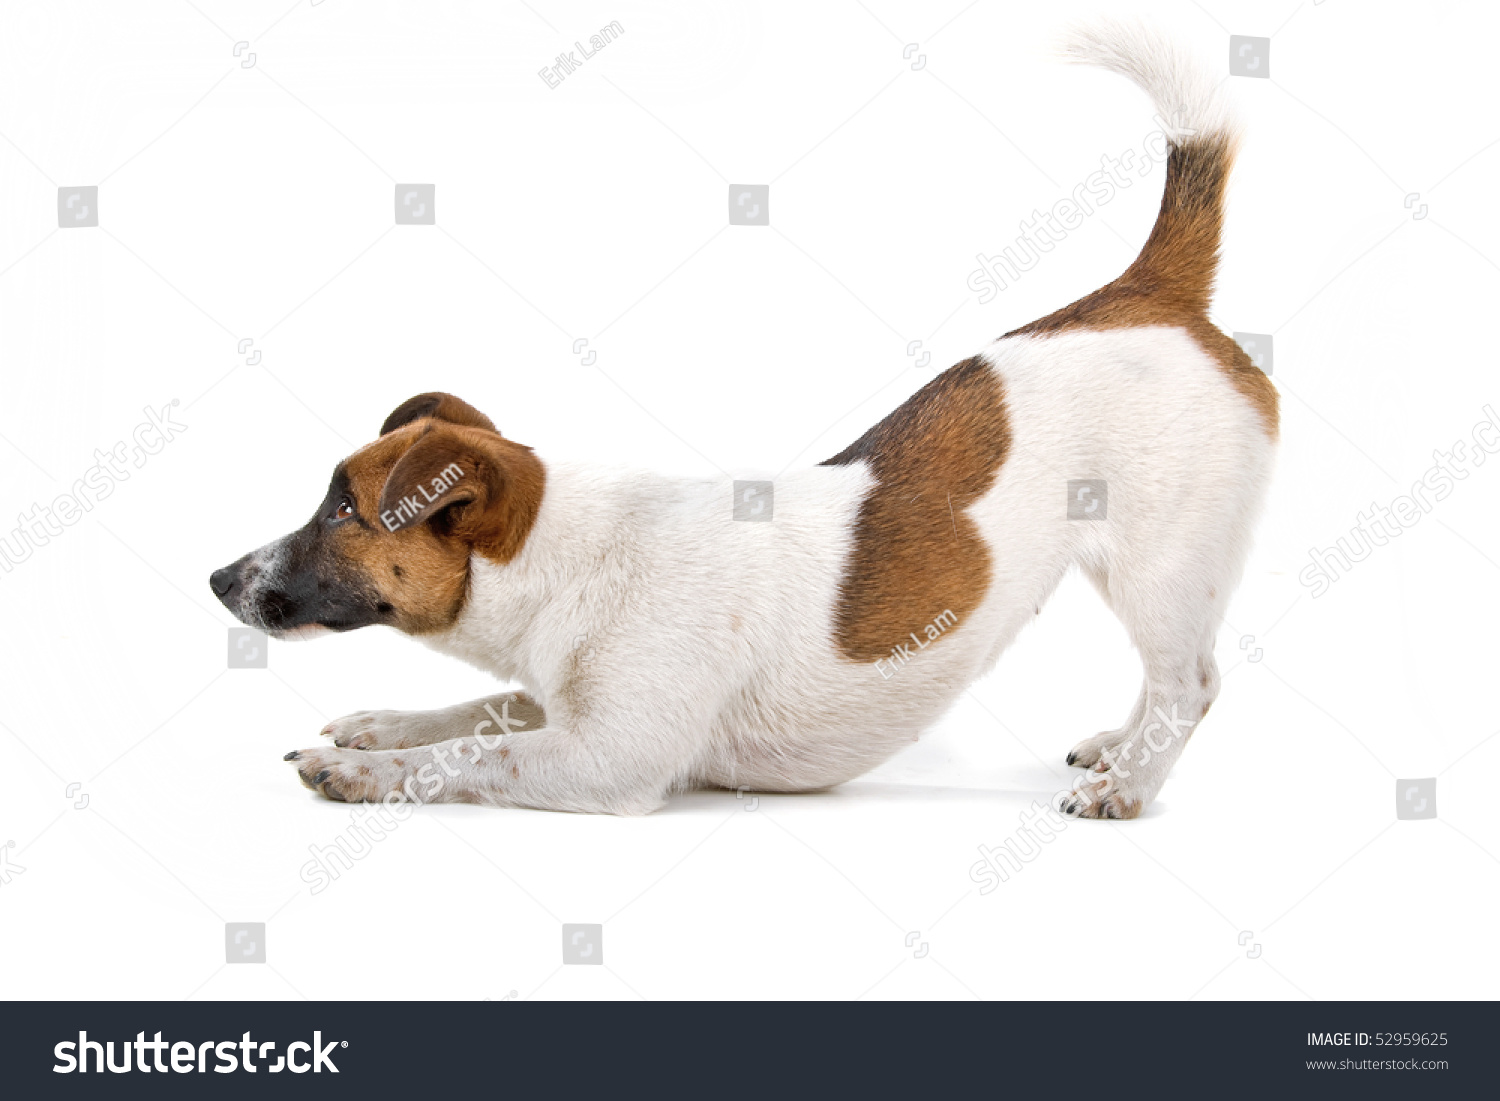 jack russel terrier dog on a white background #52959625